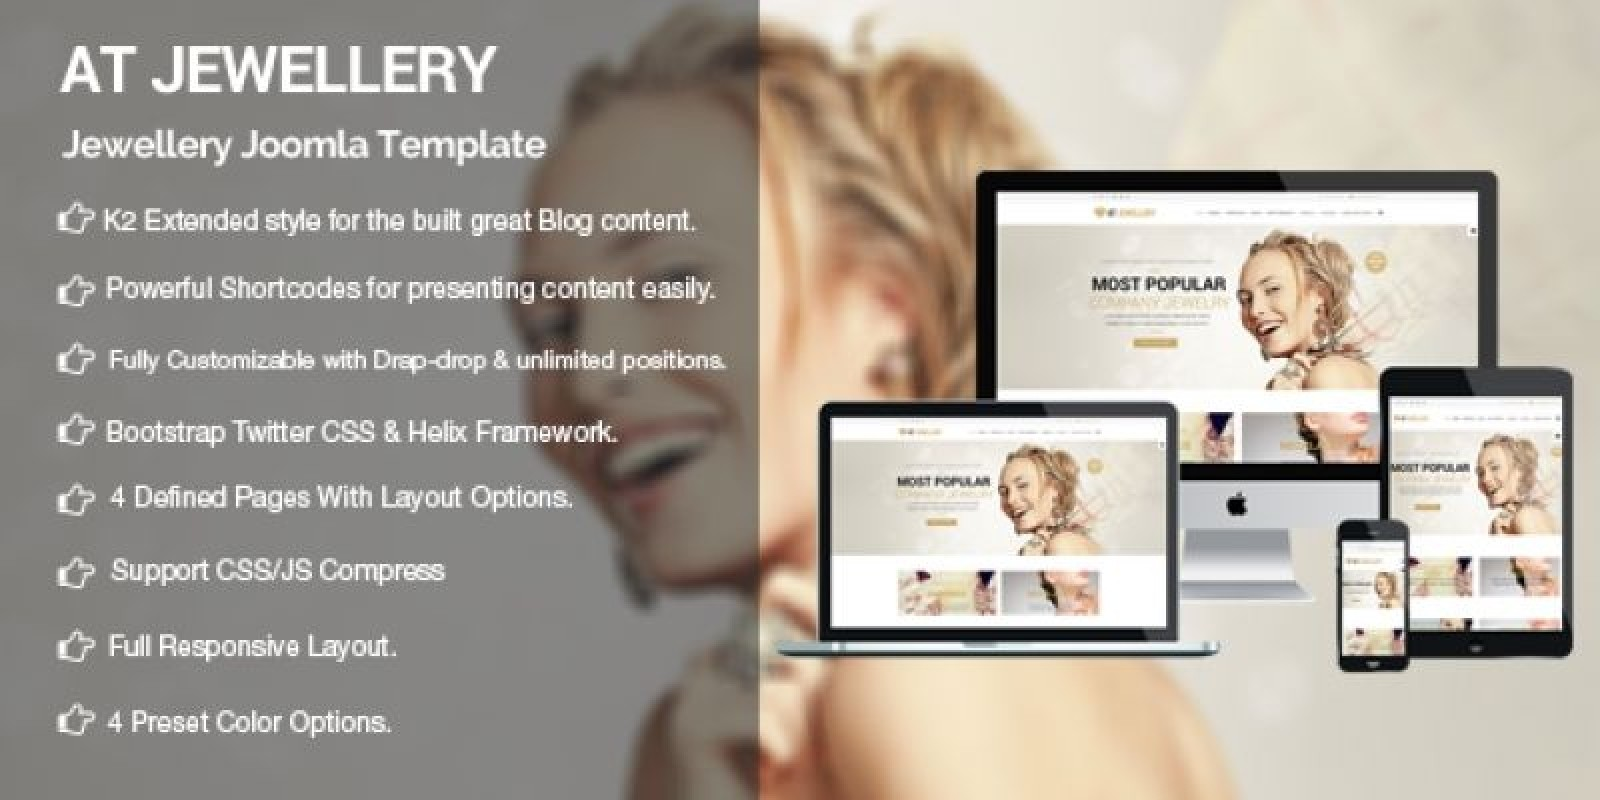 AT Jewellery Store - Diamond Store Joomla Template